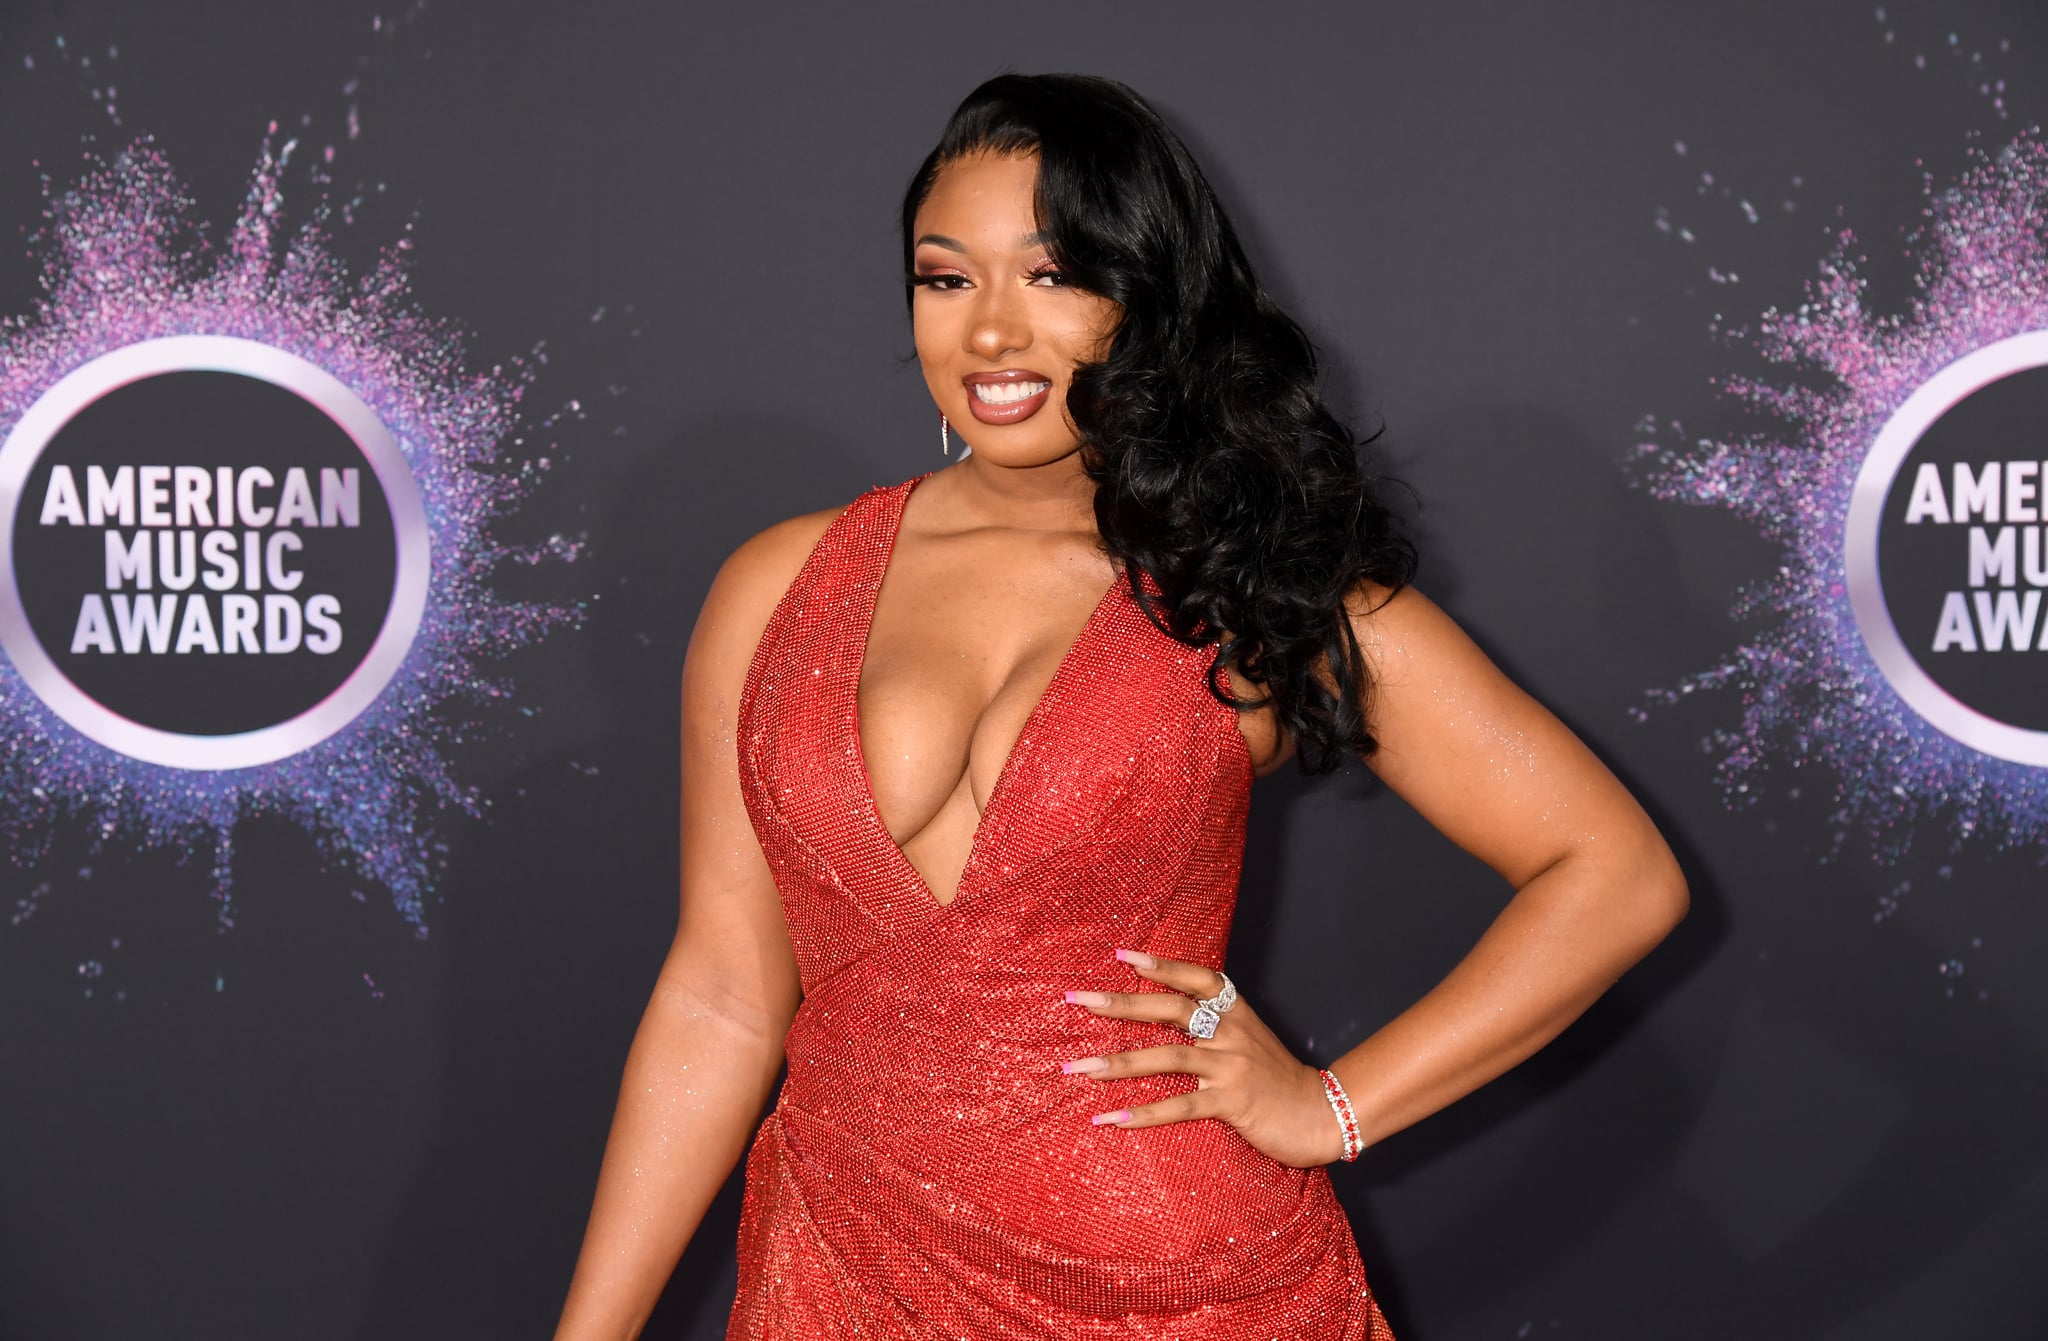 LOS ANGELES, CALIFORNIA - NOVEMBER 24: Megan Thee Stallion attends the 2019 American Music Awards at Microsoft Theater on November 24, 2019 in Los Angeles, California. (Photo by Jeff Kravitz/FilmMagic for dcp)